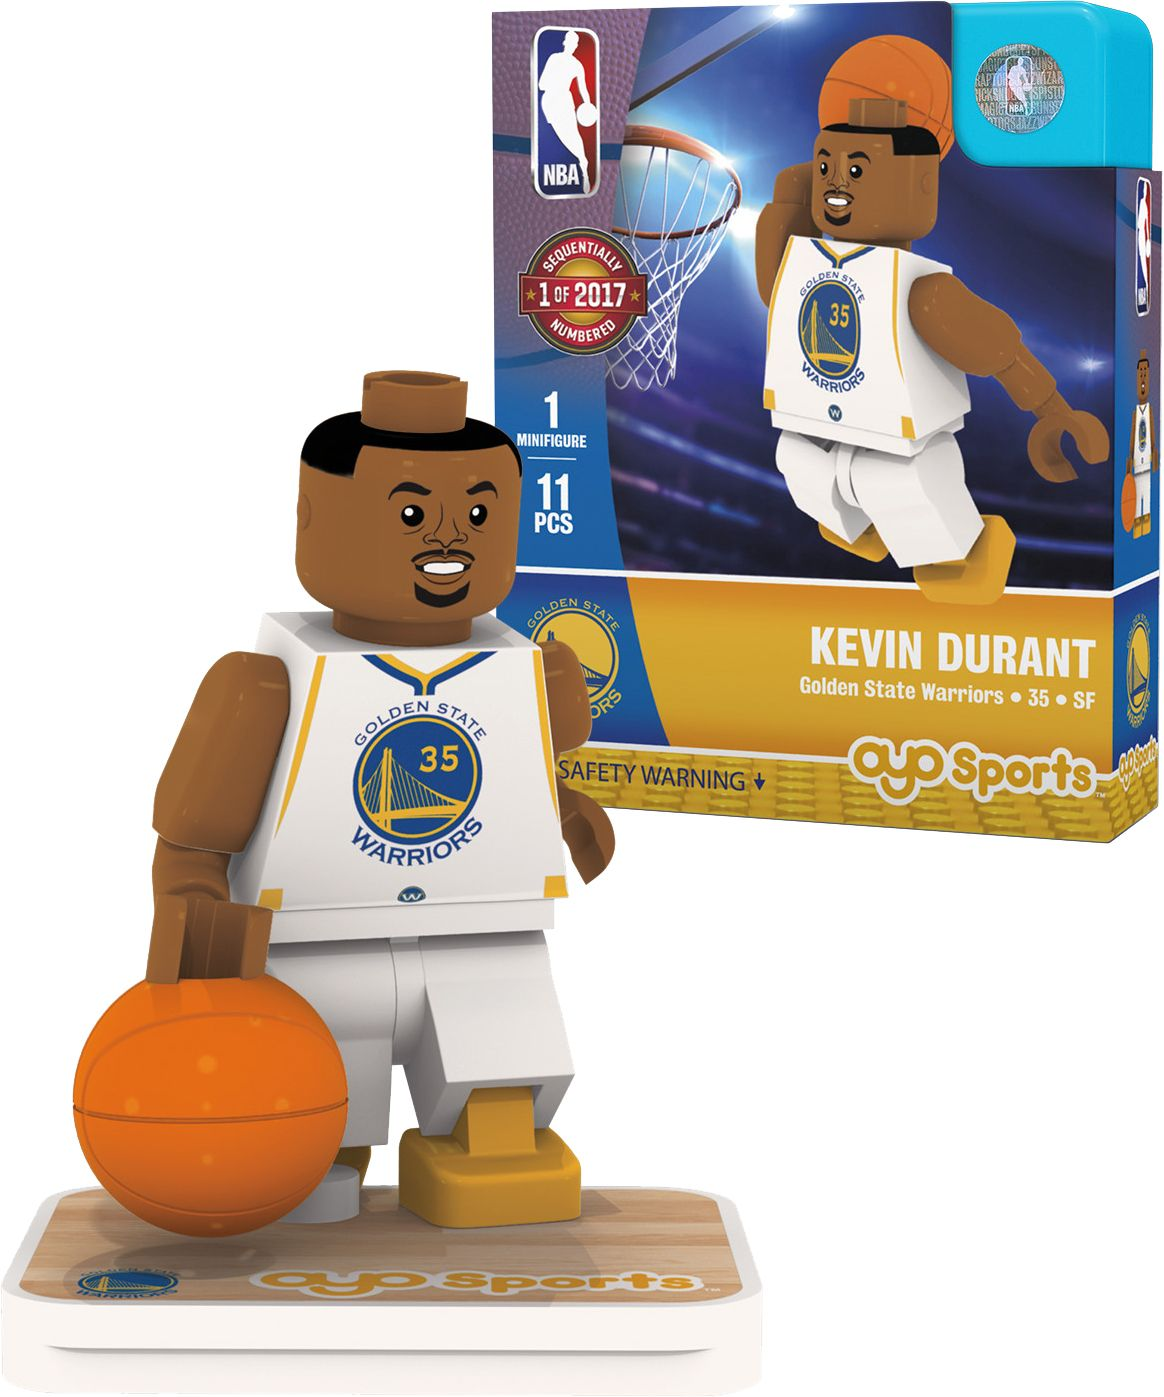 OYO Golden State Warriors Kevin Durant Figurine, Team